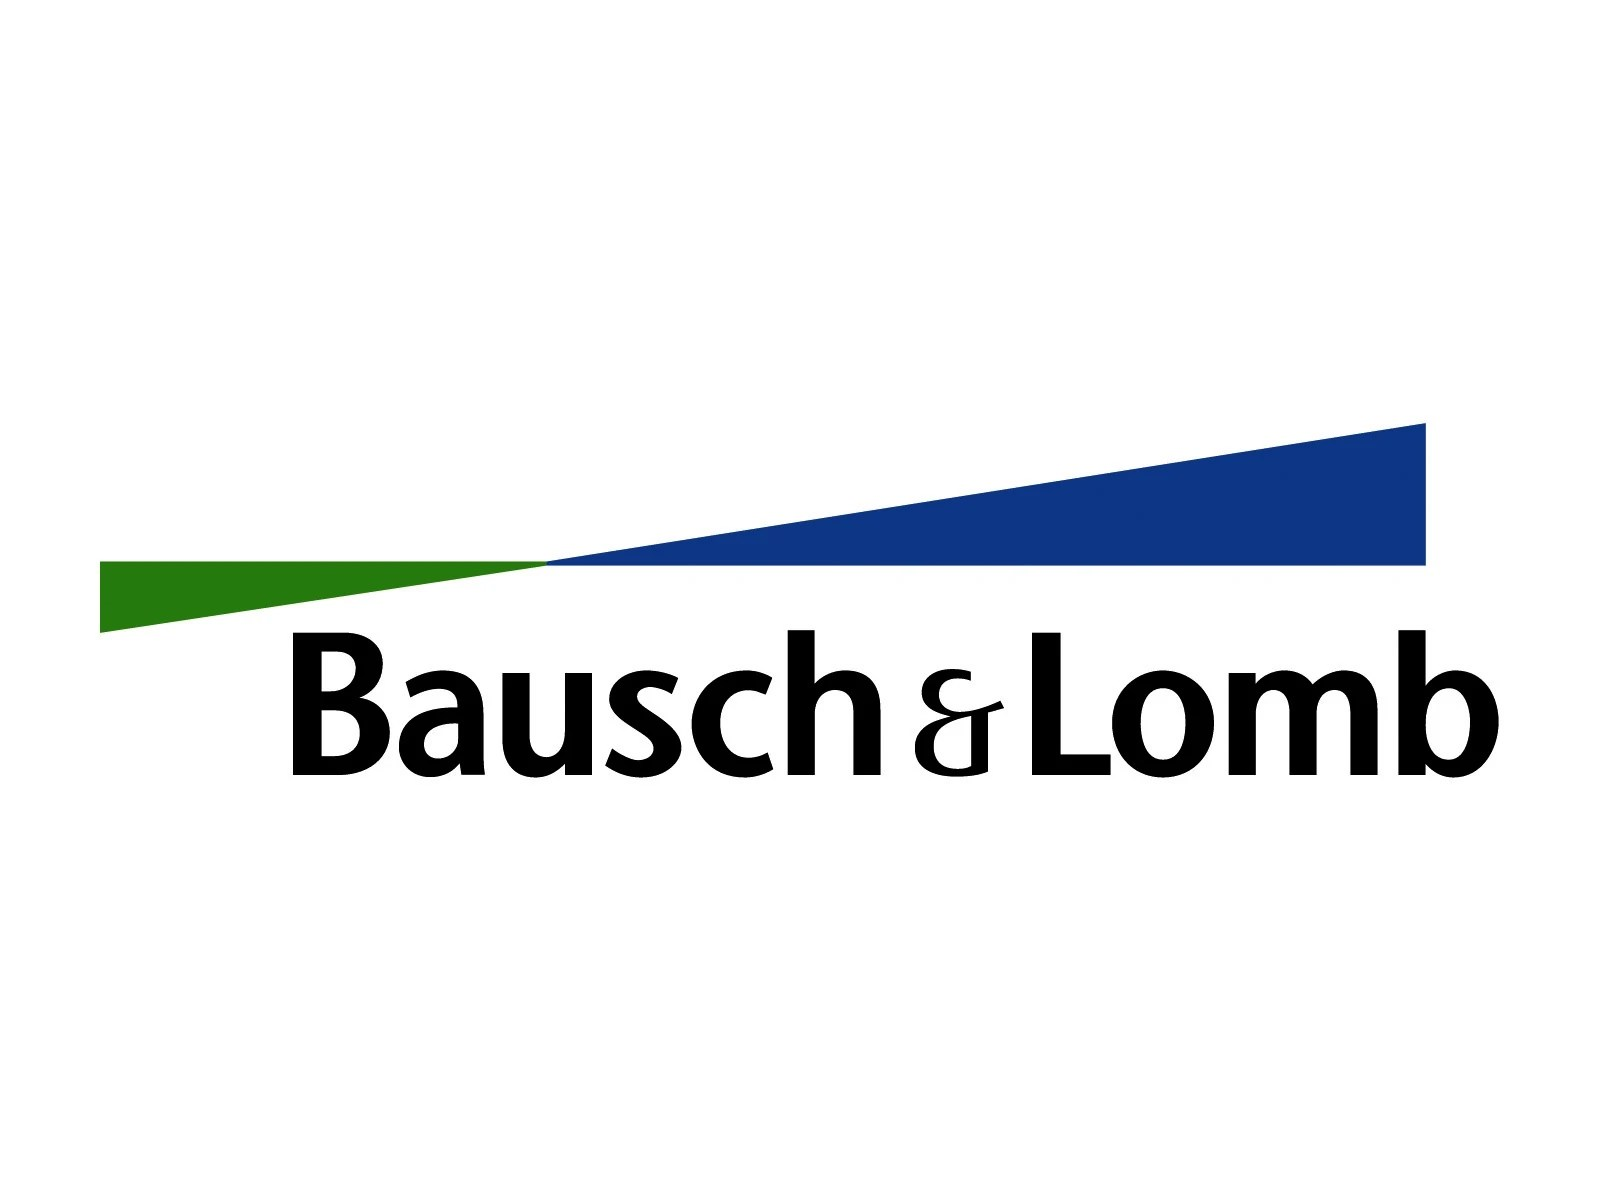 Bausch En Lomb Lomb Definition What Is